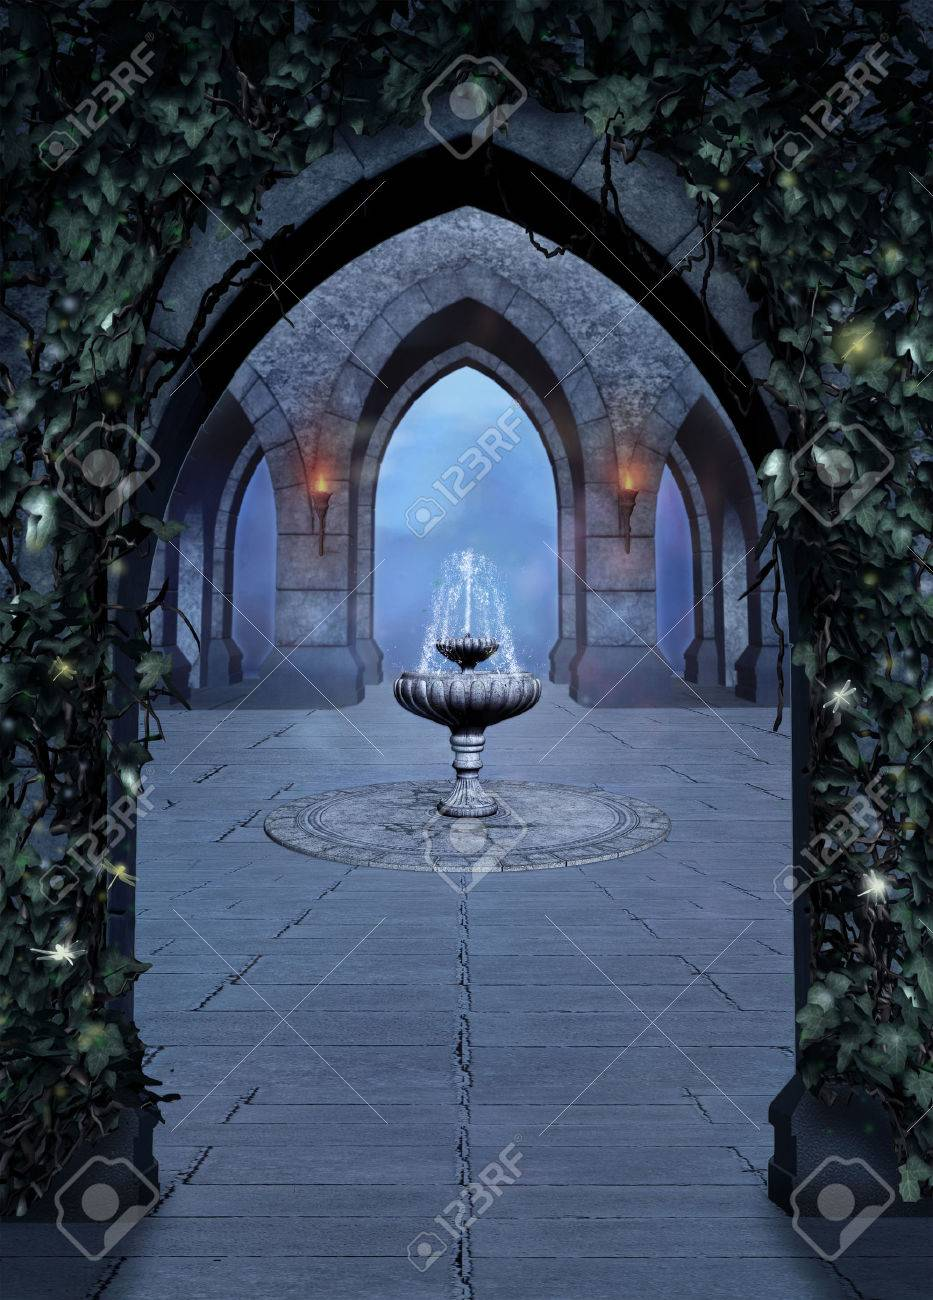 Beautiful font in a medieval castle at night - 34938024